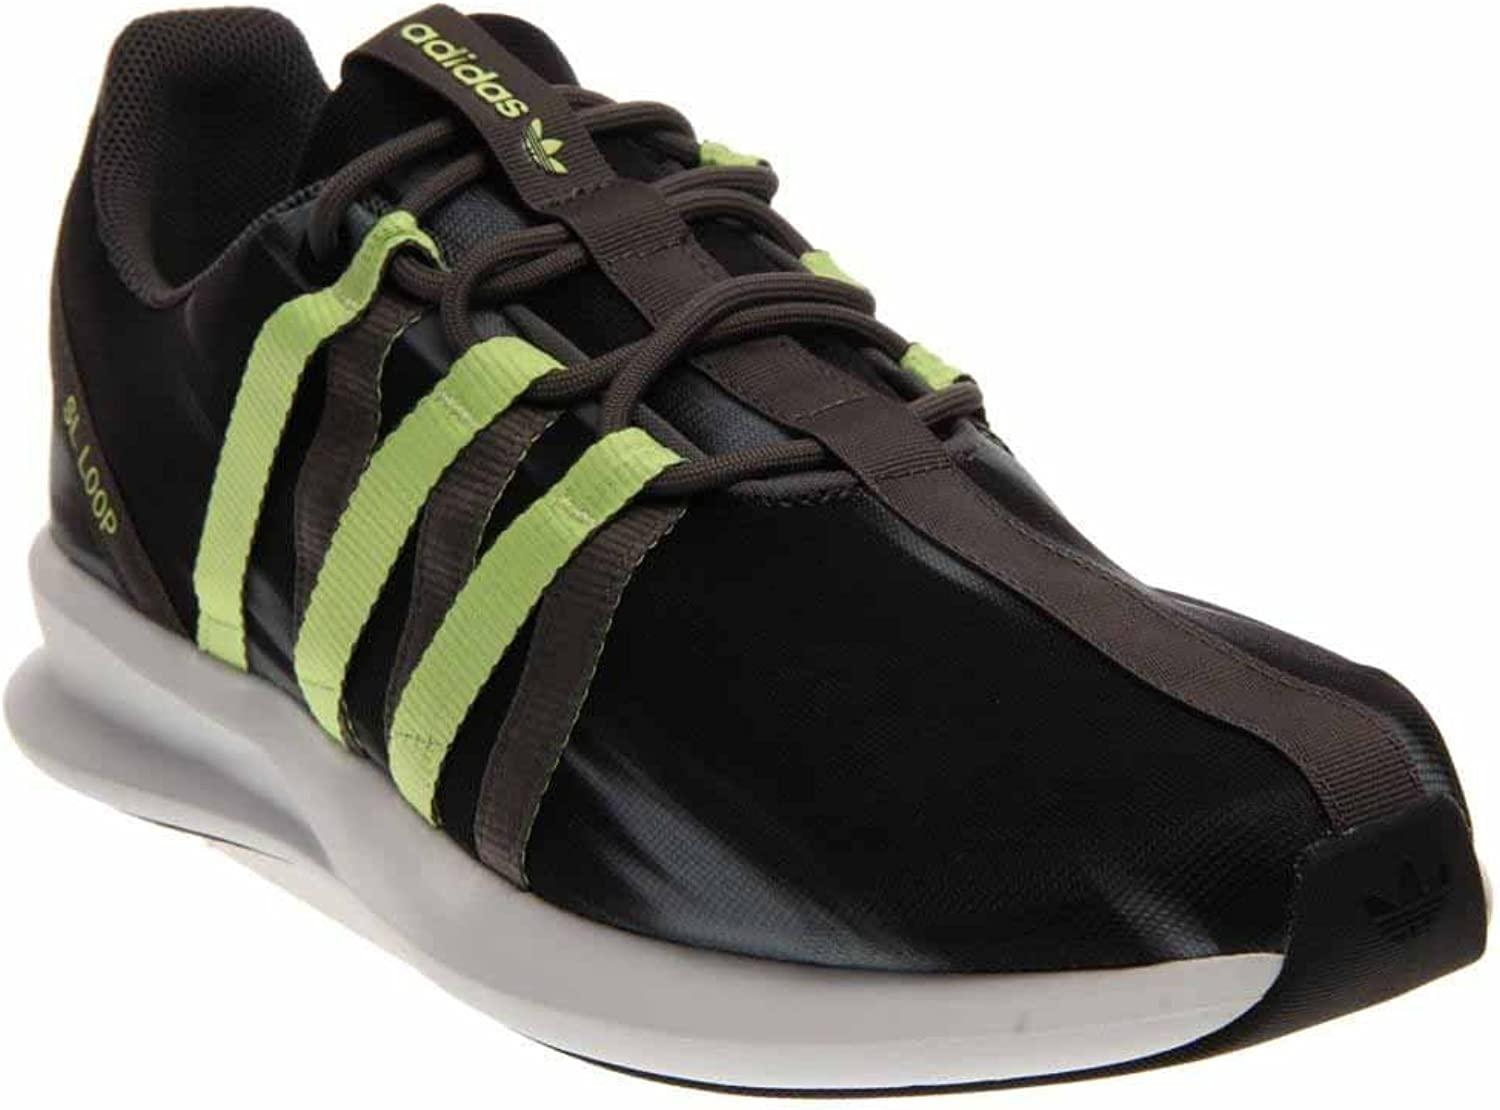 Adidas SL Loop Racer Synthetic Fibre Running shoes